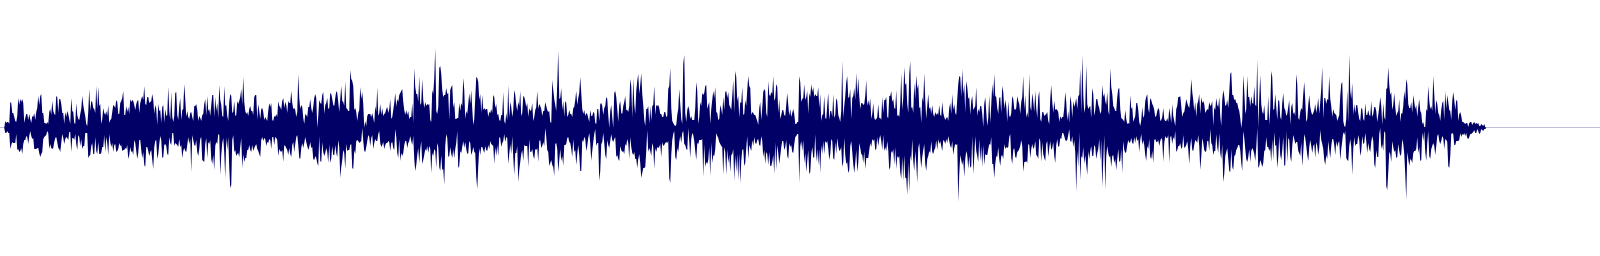 waveform of track #95135